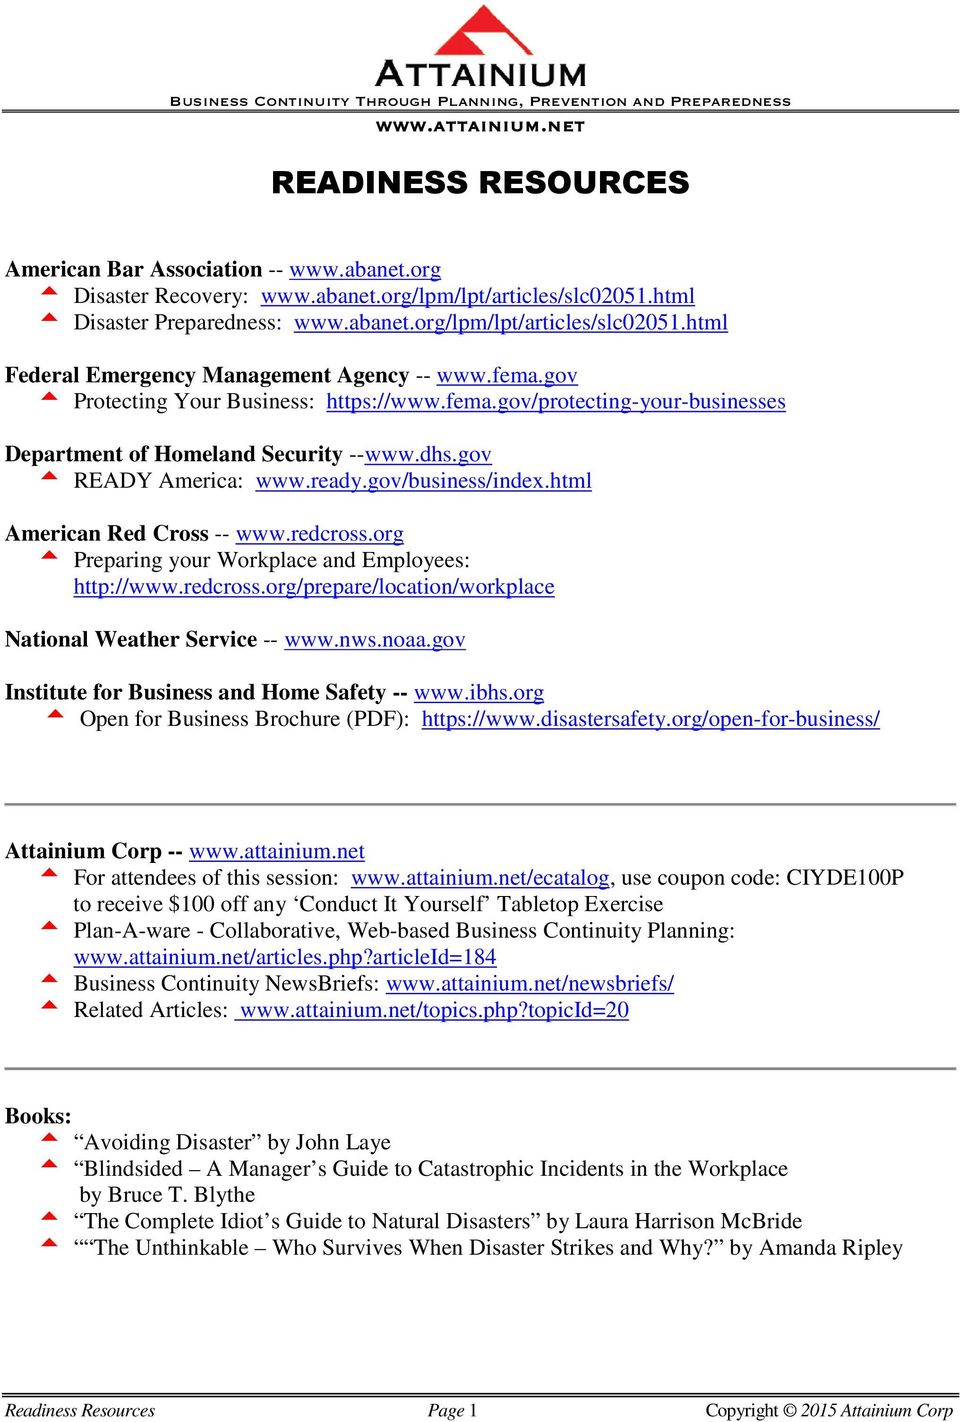 The handouts and presentations attached are copyright and